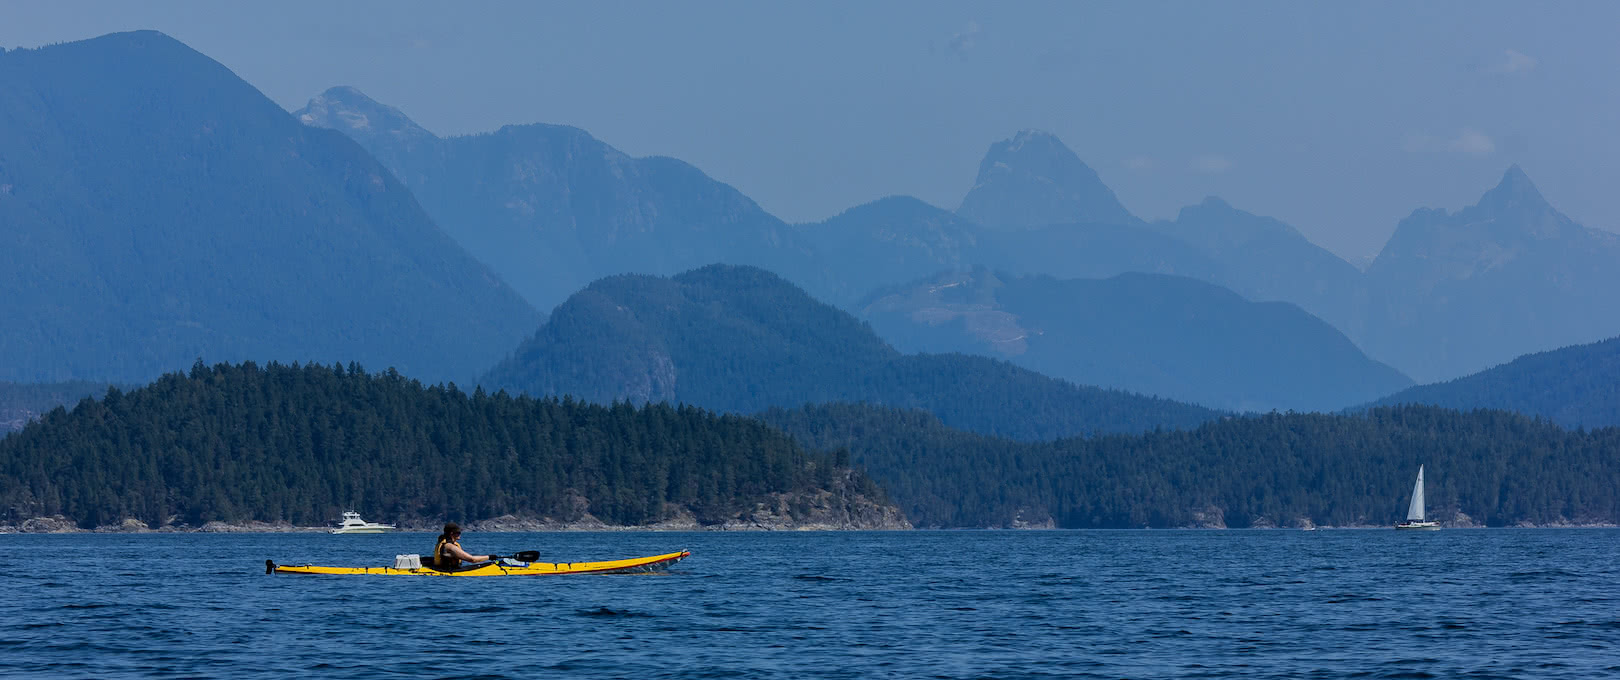 A kayaker paddling with the coast mountains in the distance